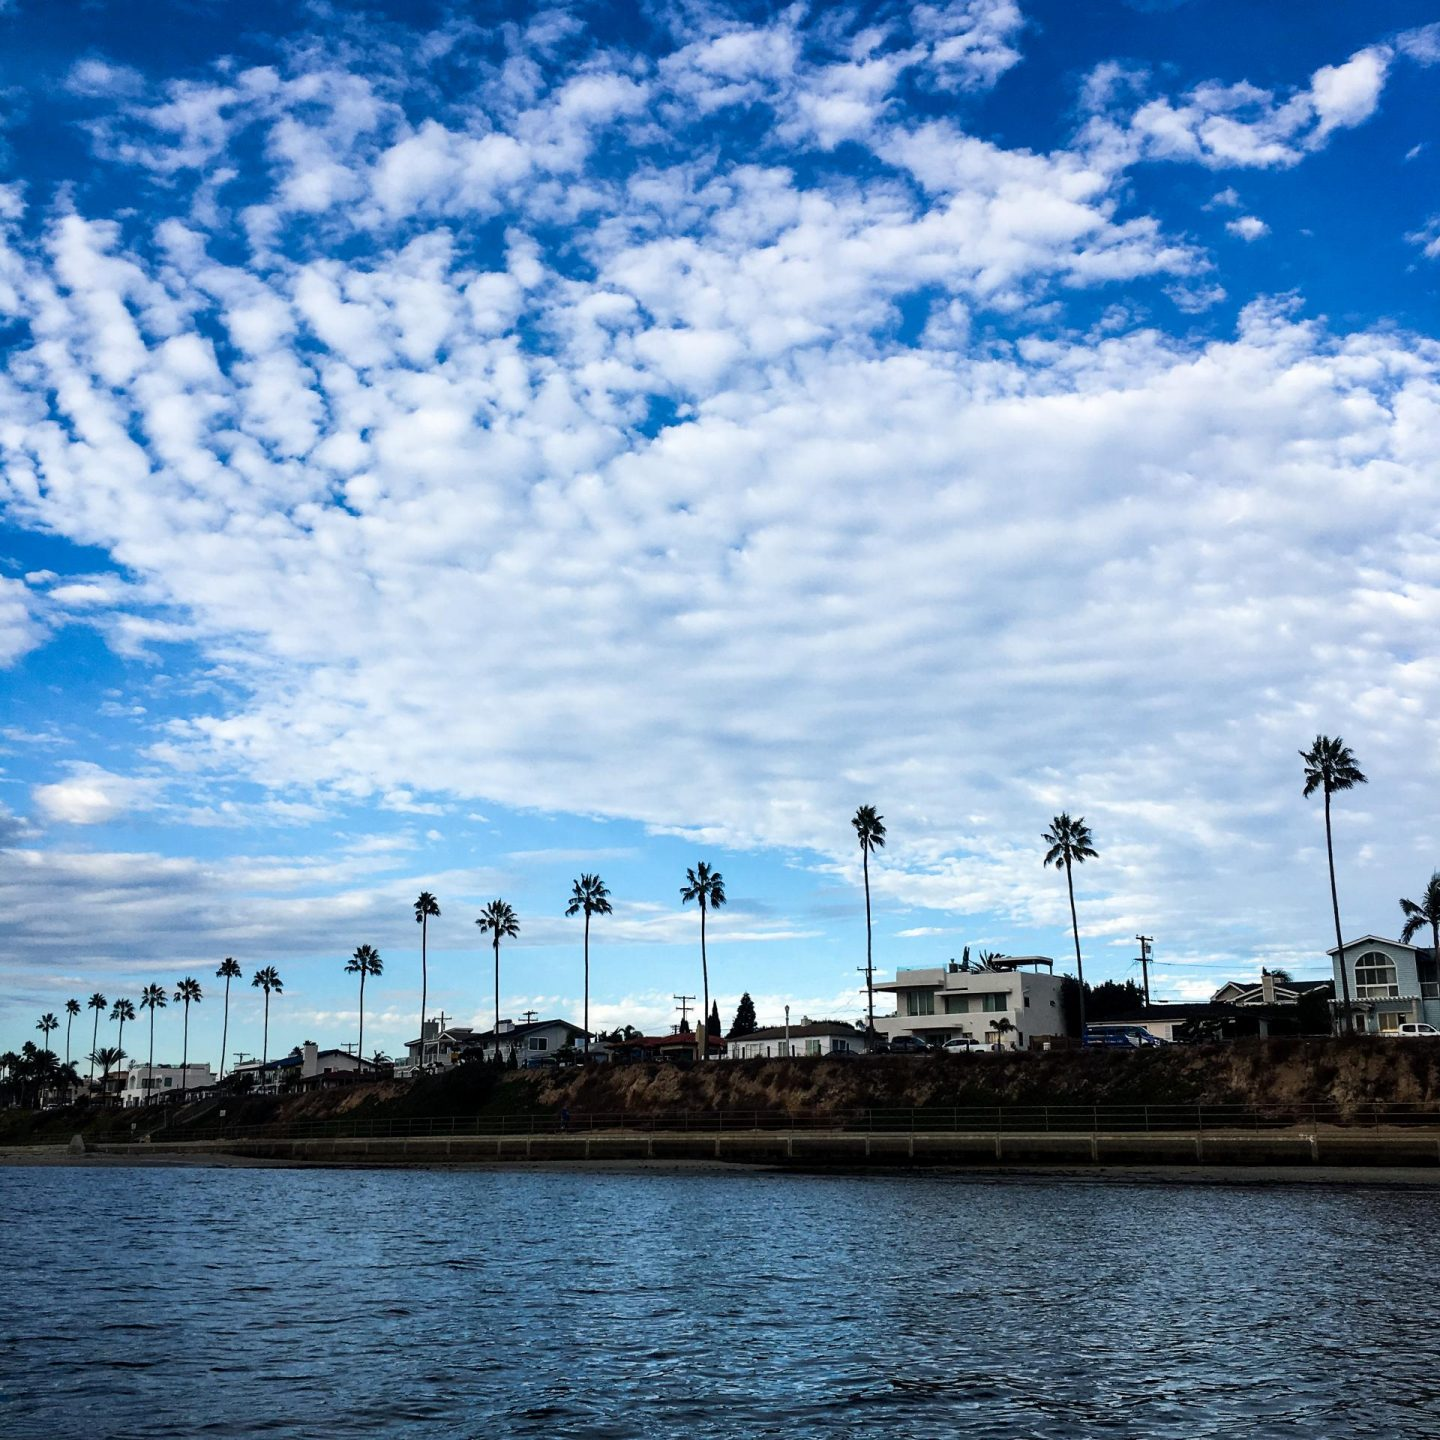 San Diego Mission Bay Boat, USA Diary - Rachel Nicole UK Blogger